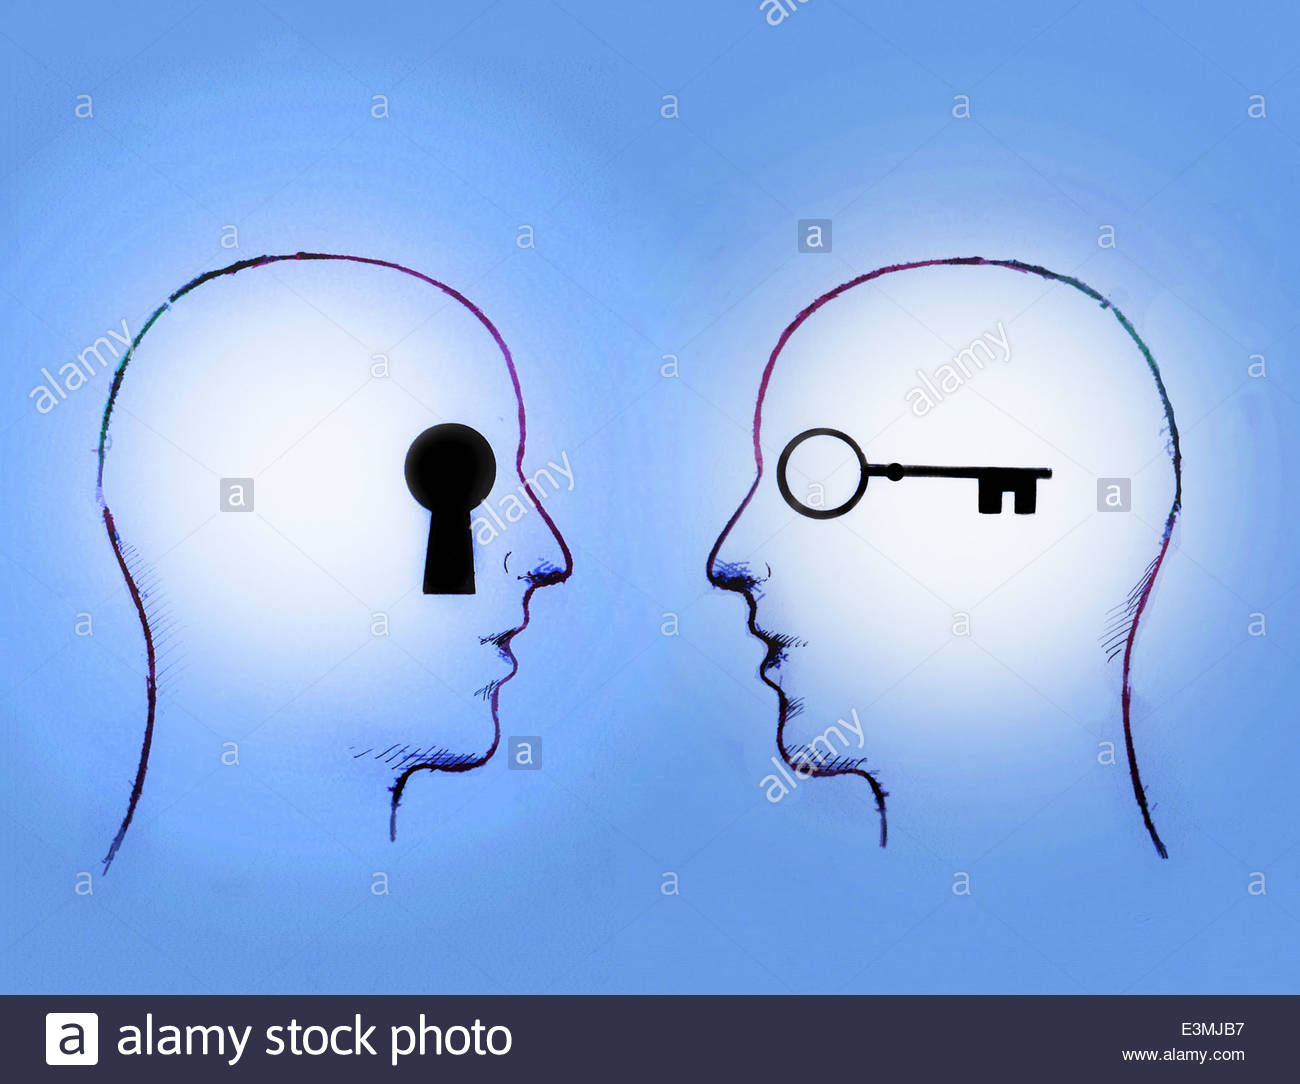 Key and keyhole inside of men's heads face to face - Stock Image